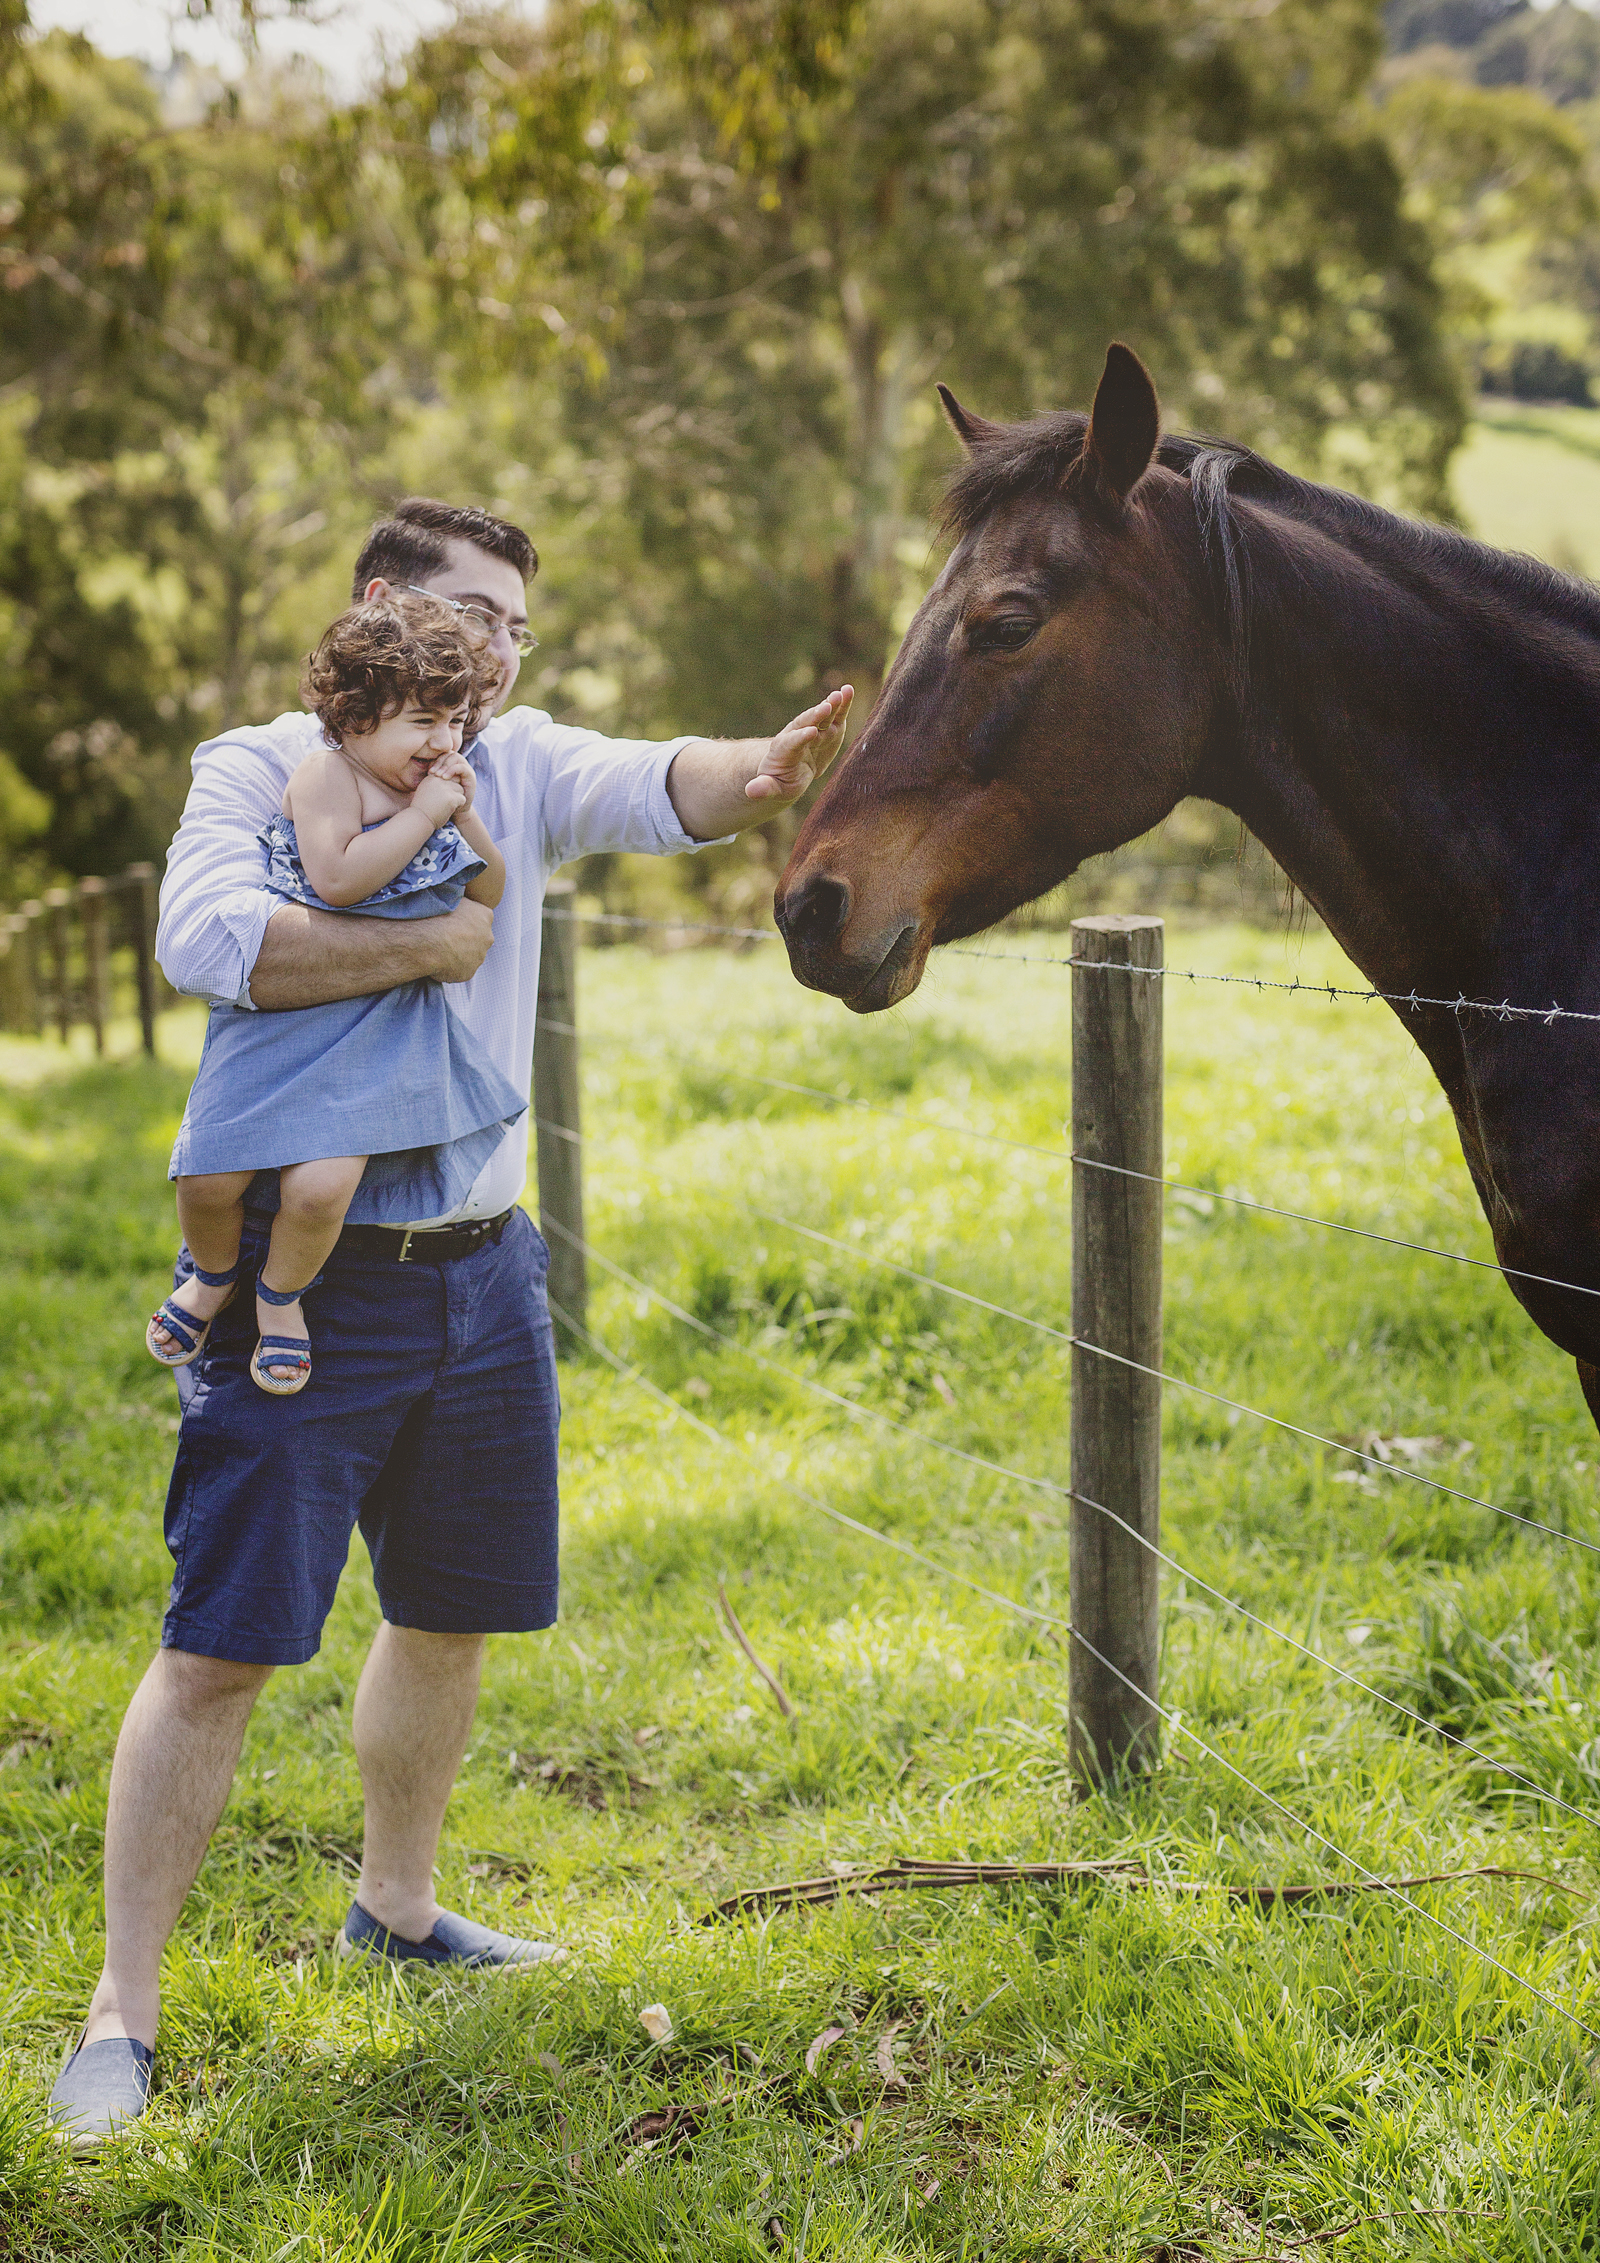 Toddler patting a horse with her dad